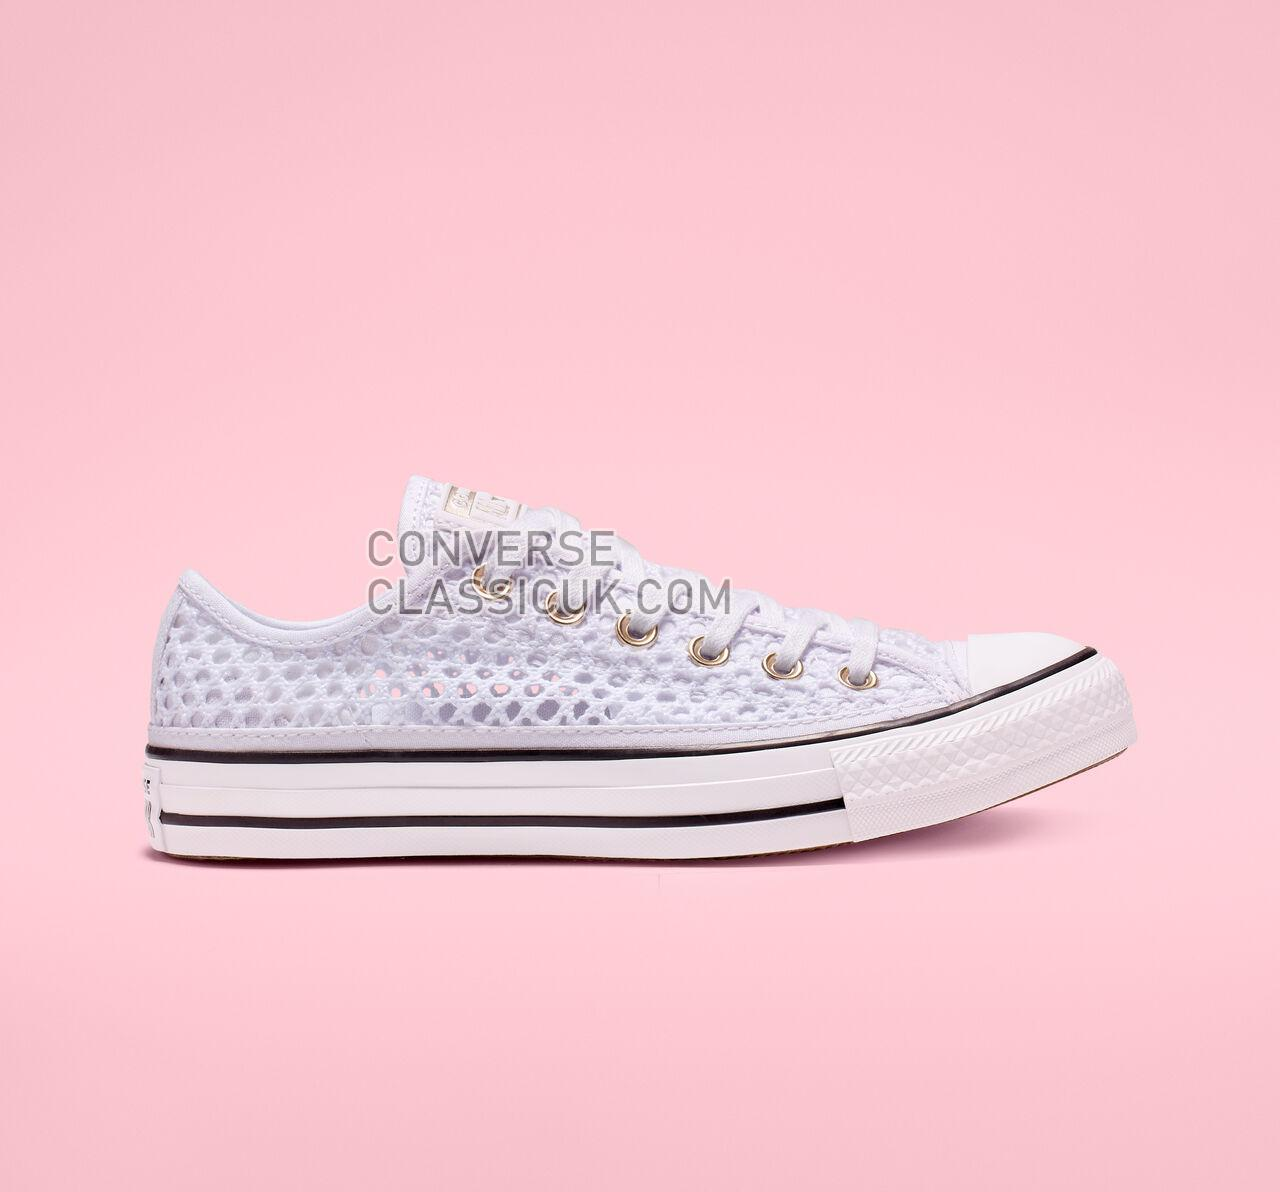 Converse Chuck Taylor All Star Crochet Low Top Womens 565495C White/Black/White Shoes